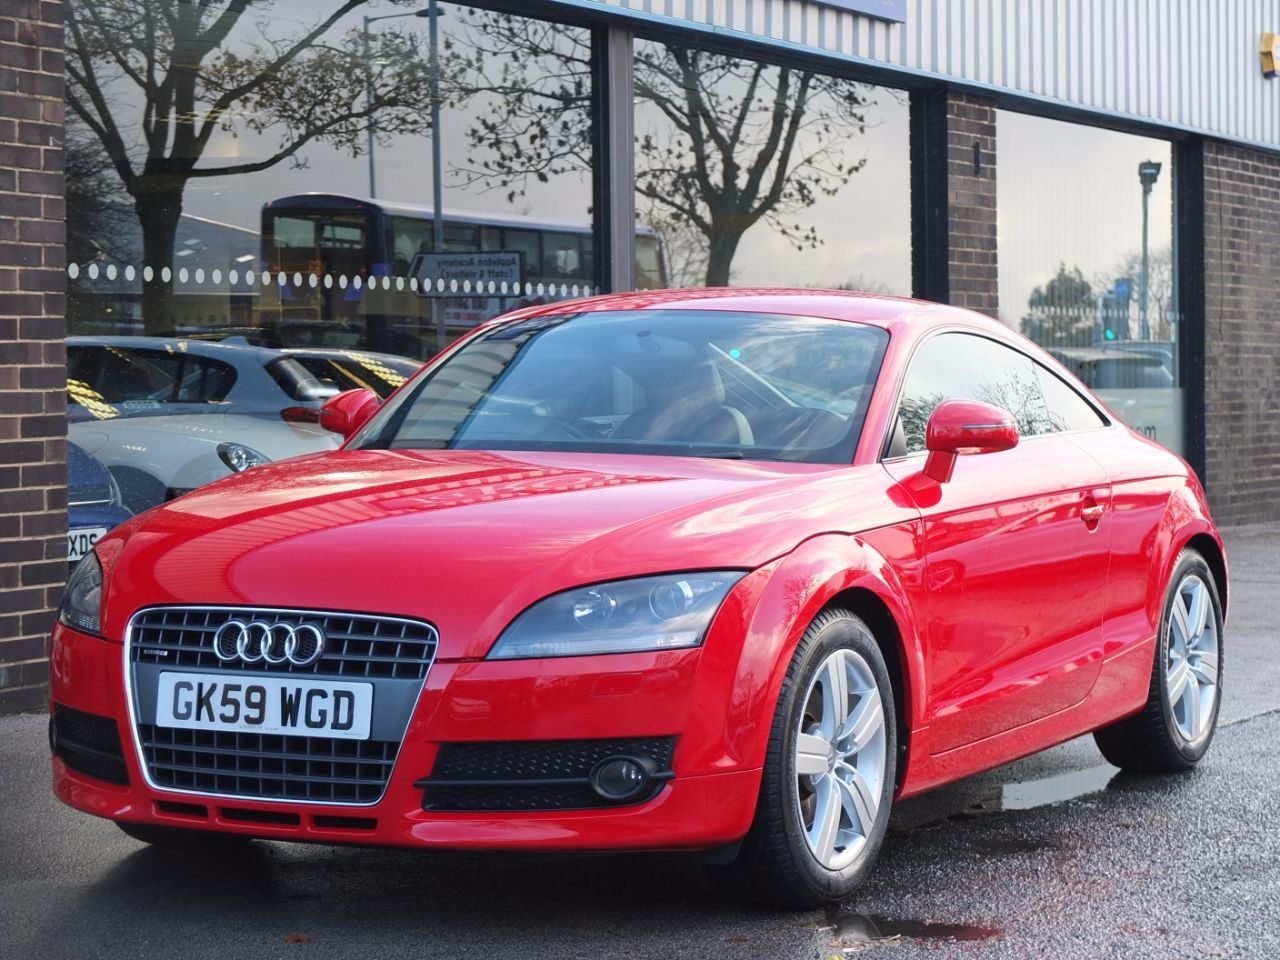 Audi TT Coupe 2.0 TDI quattro 170ps Coupe Diesel Brilliant RedAudi TT Coupe 2.0 TDI quattro 170ps Coupe Diesel Brilliant Red at fa Roper Ltd Bradford